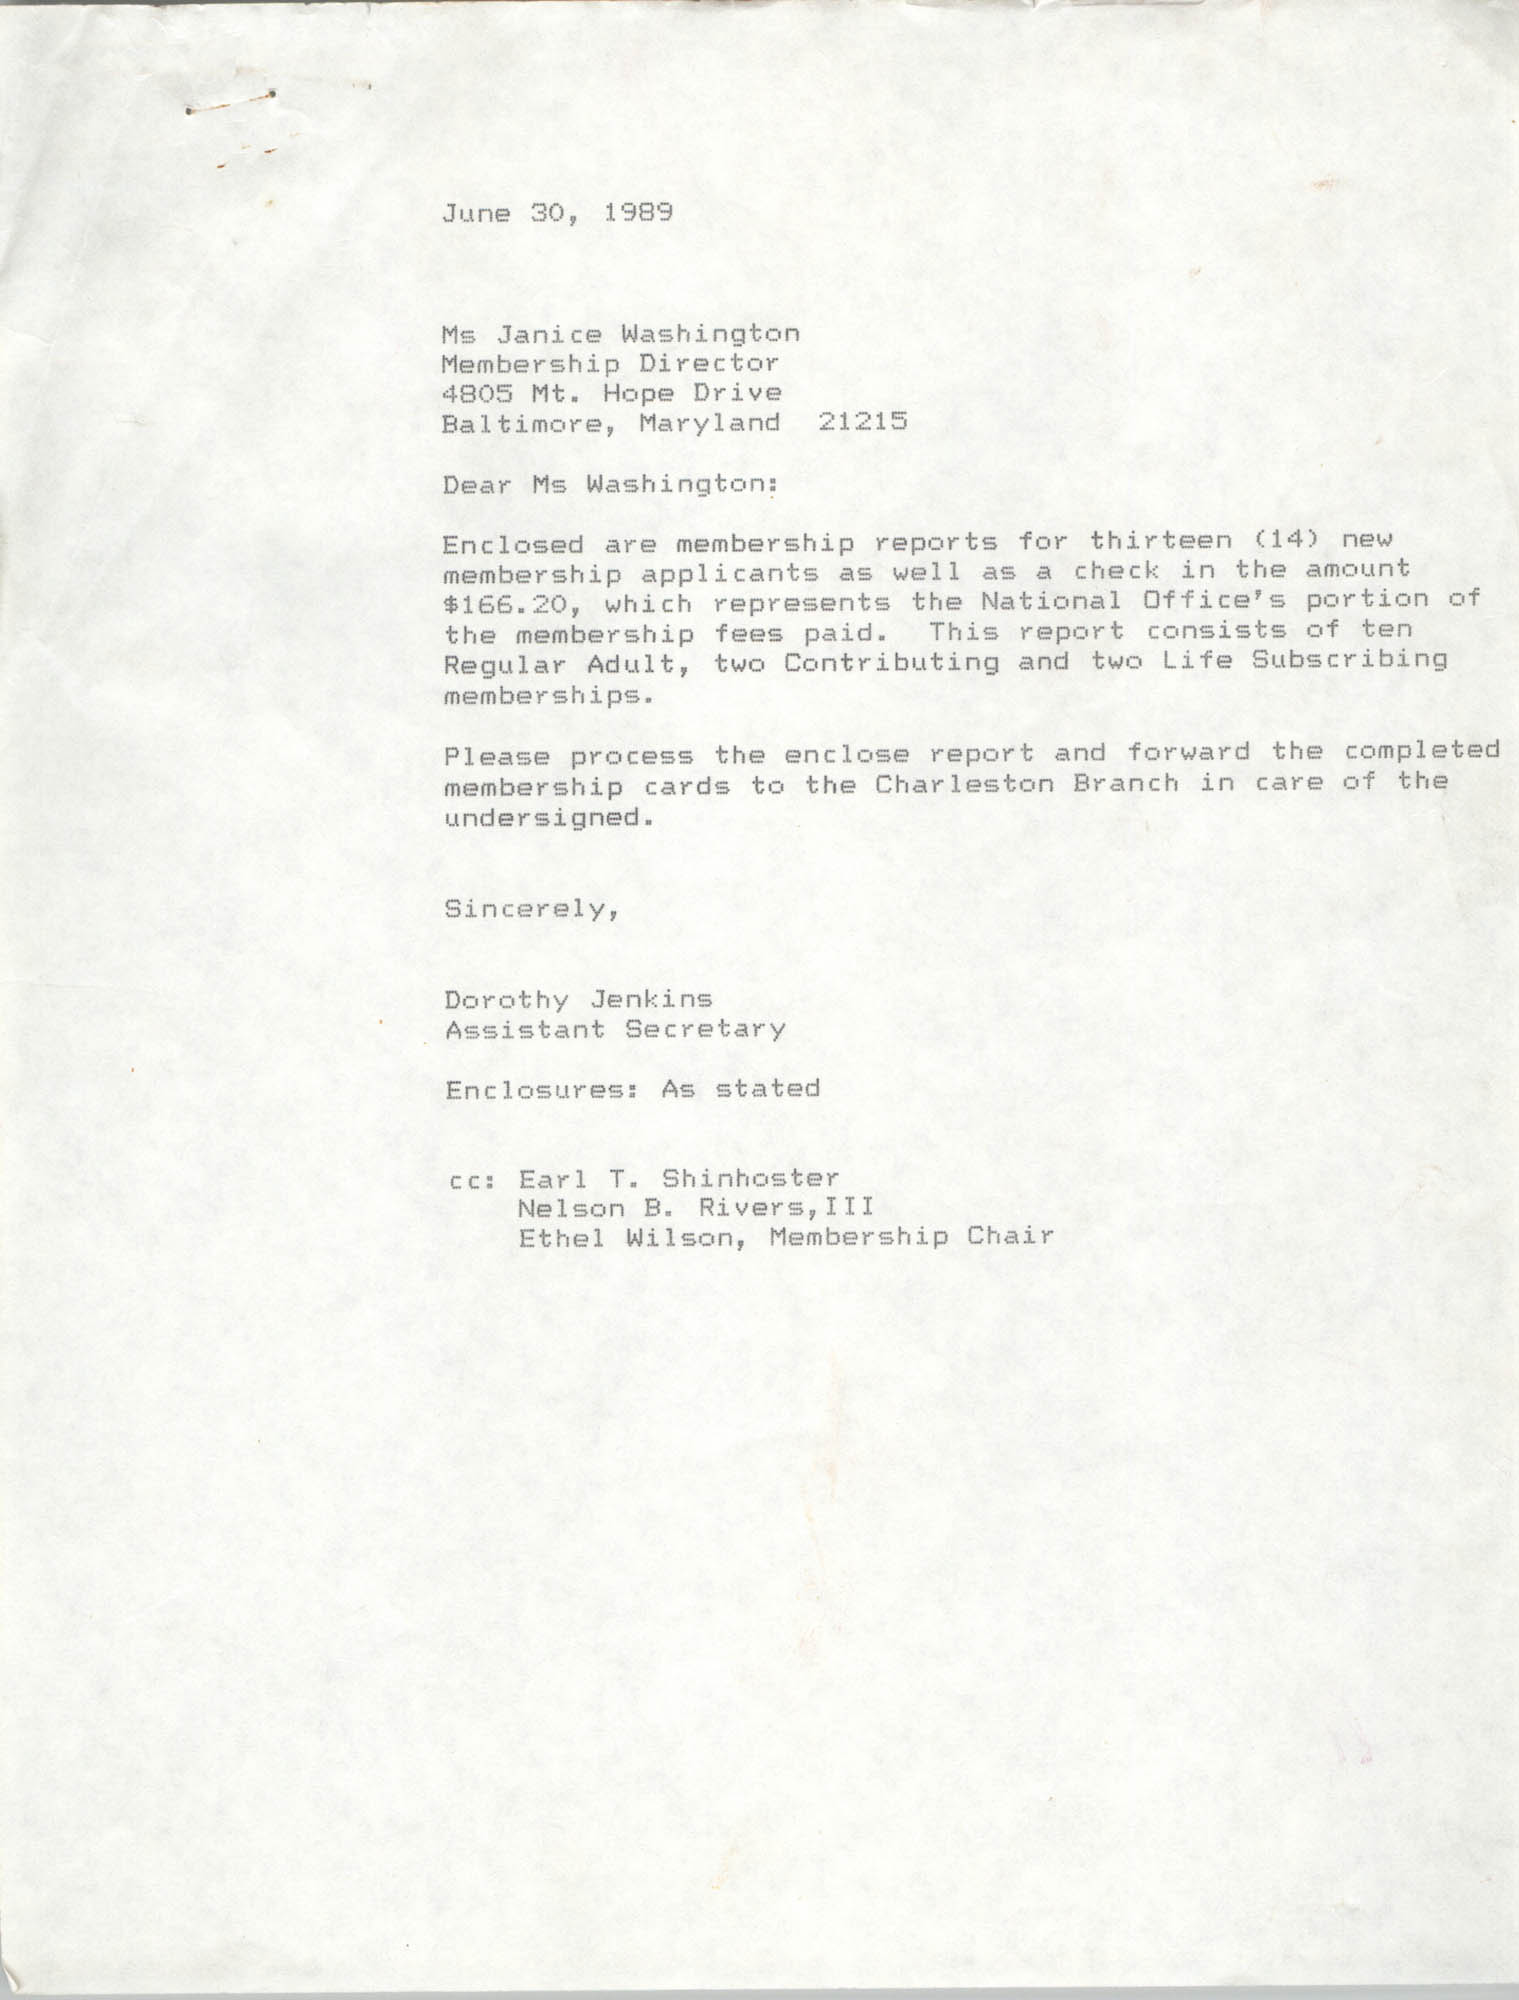 Letter from Dorothy Jenkins to Janice Washington, NAACP, June 30, 1989